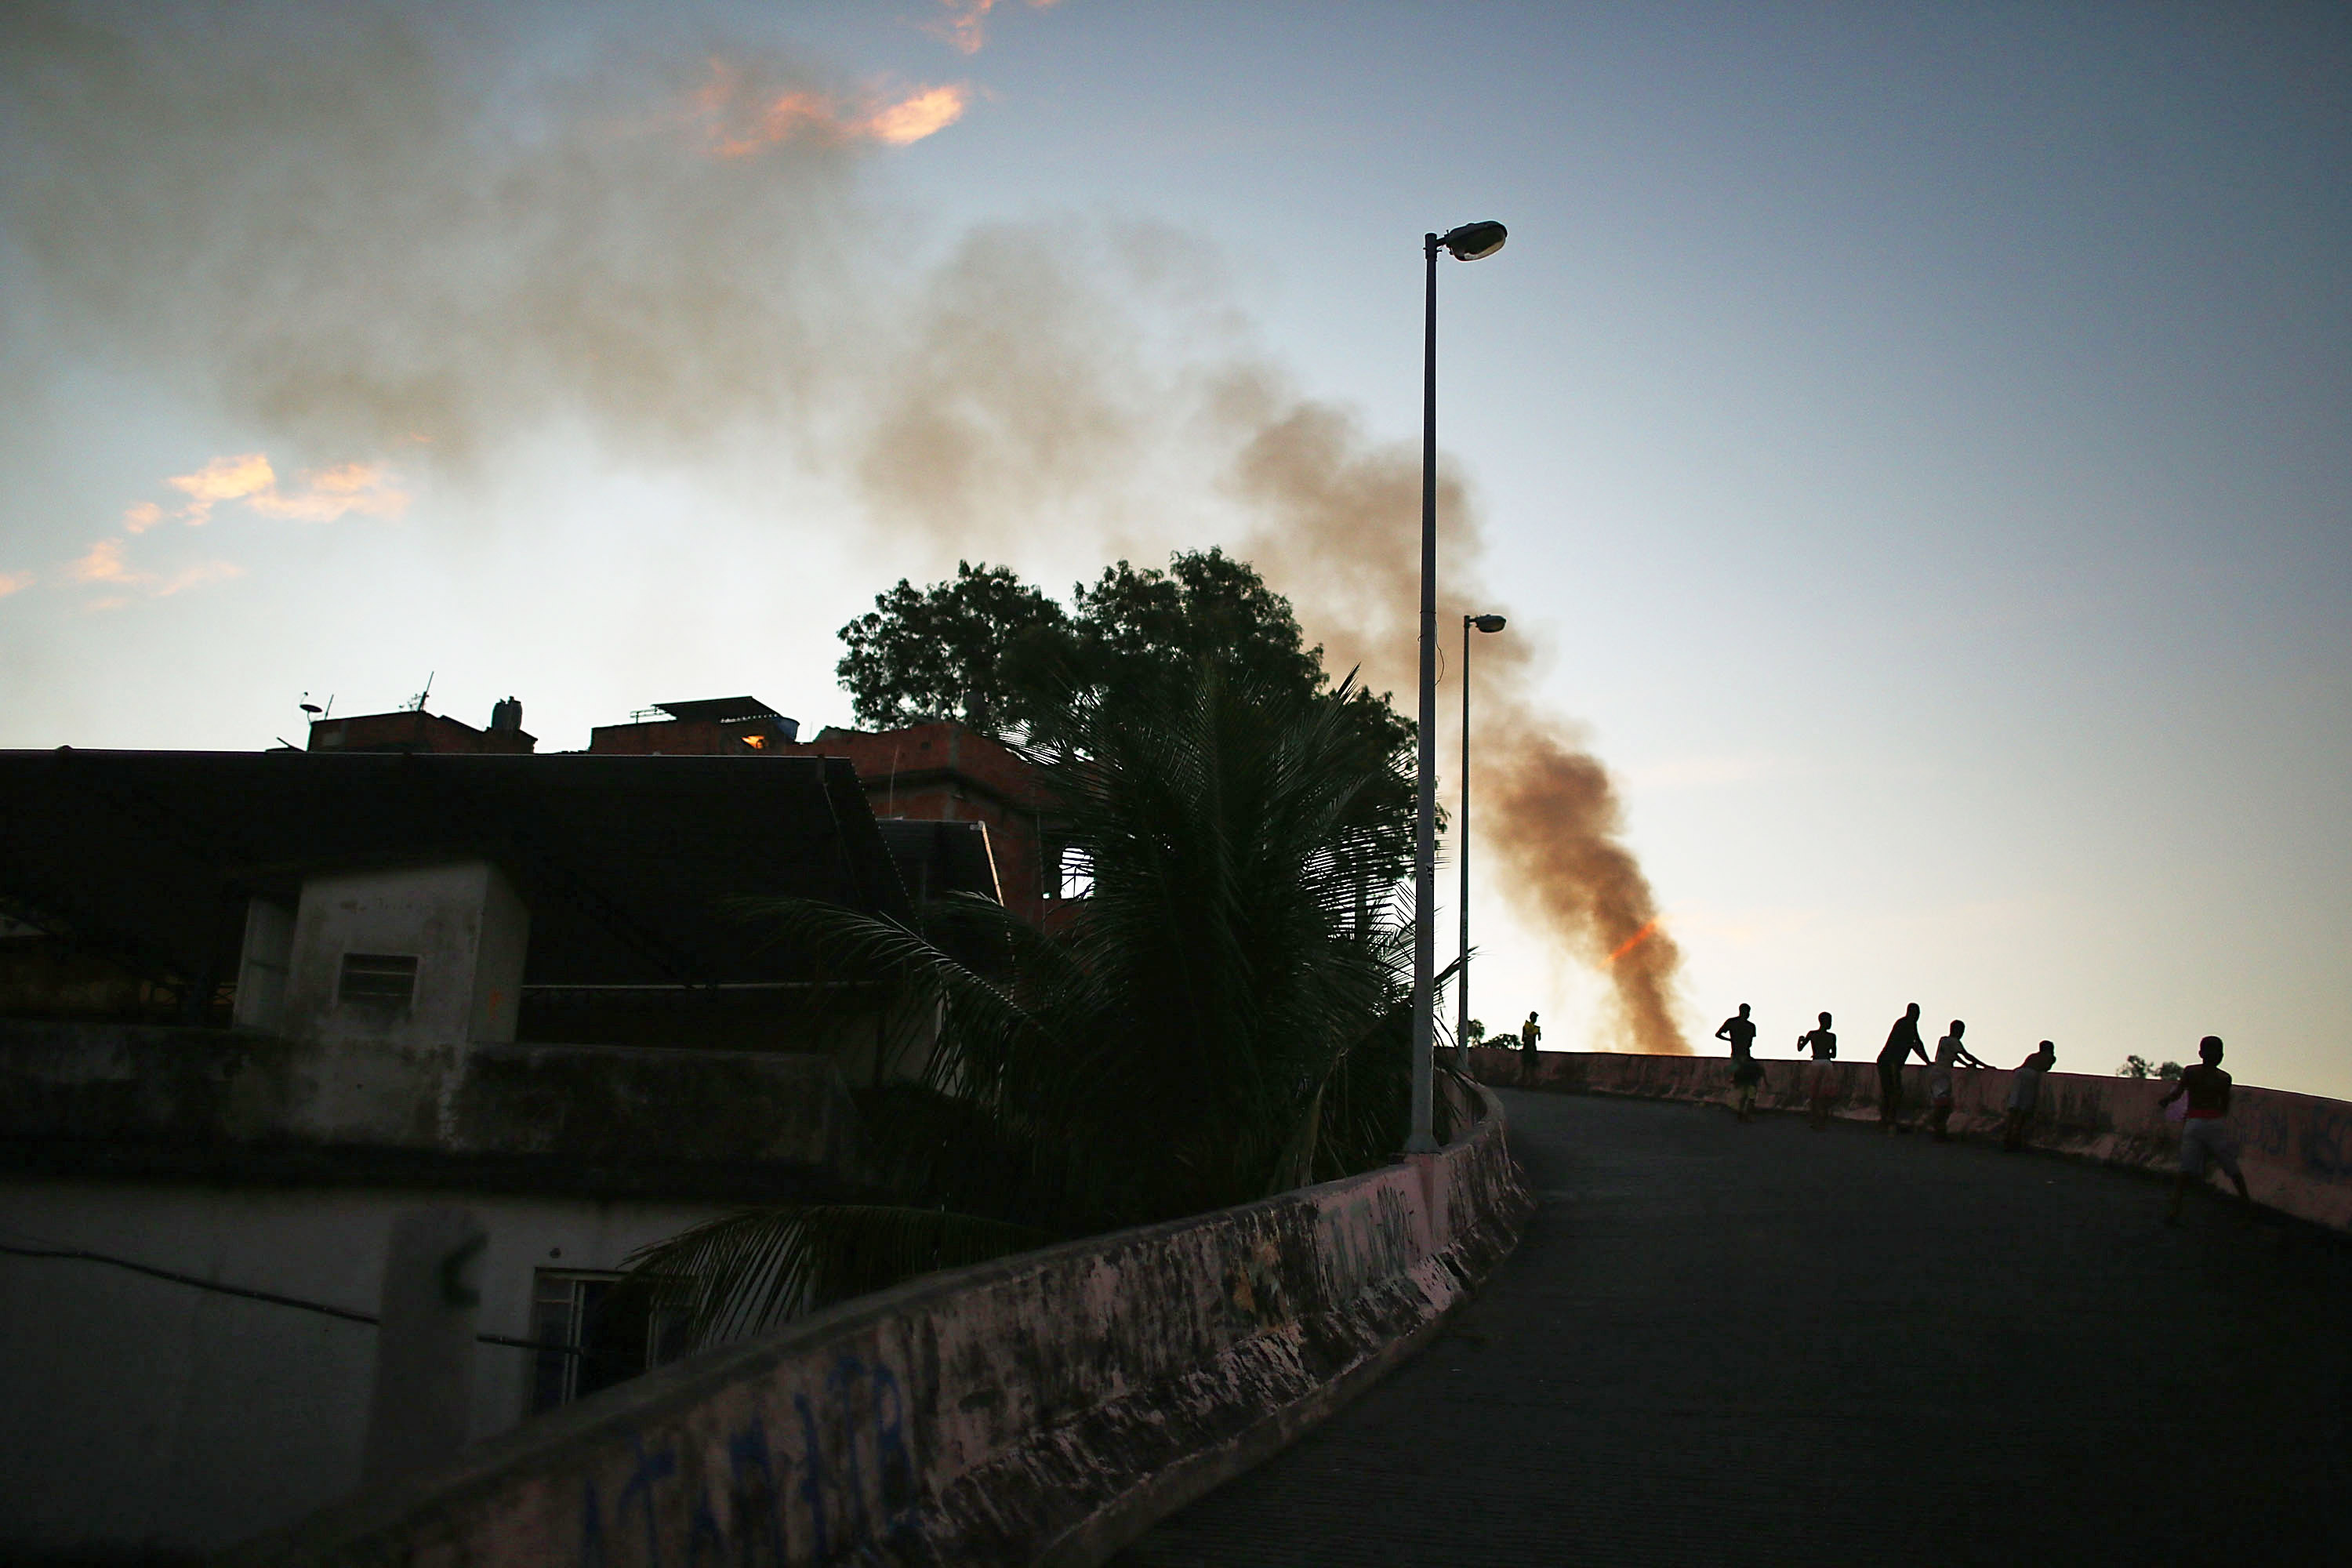 Kids look over a ledge as a trash fire burns in the Mangueira favela which overlooks the famed Maracana Stadium on June 5, 2014 in Rio de Janeiro.